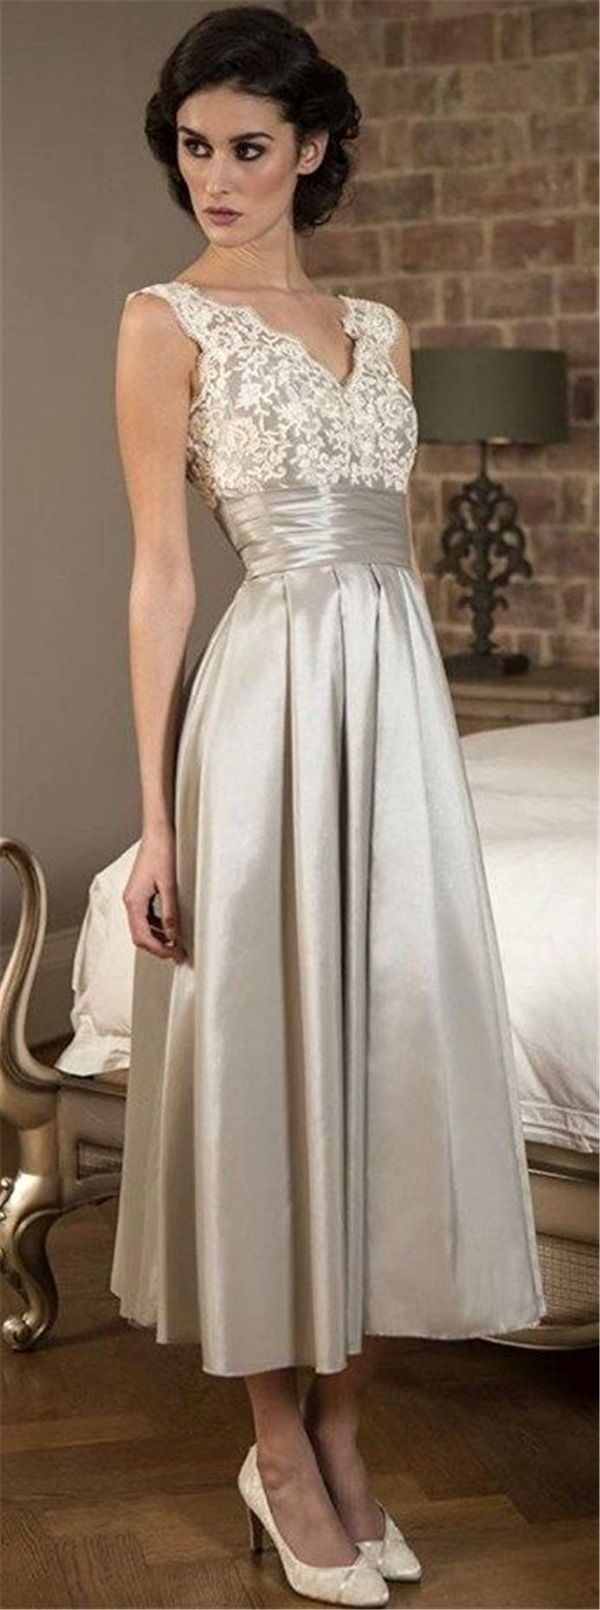 long length mother of the bride and groom dresses wedding